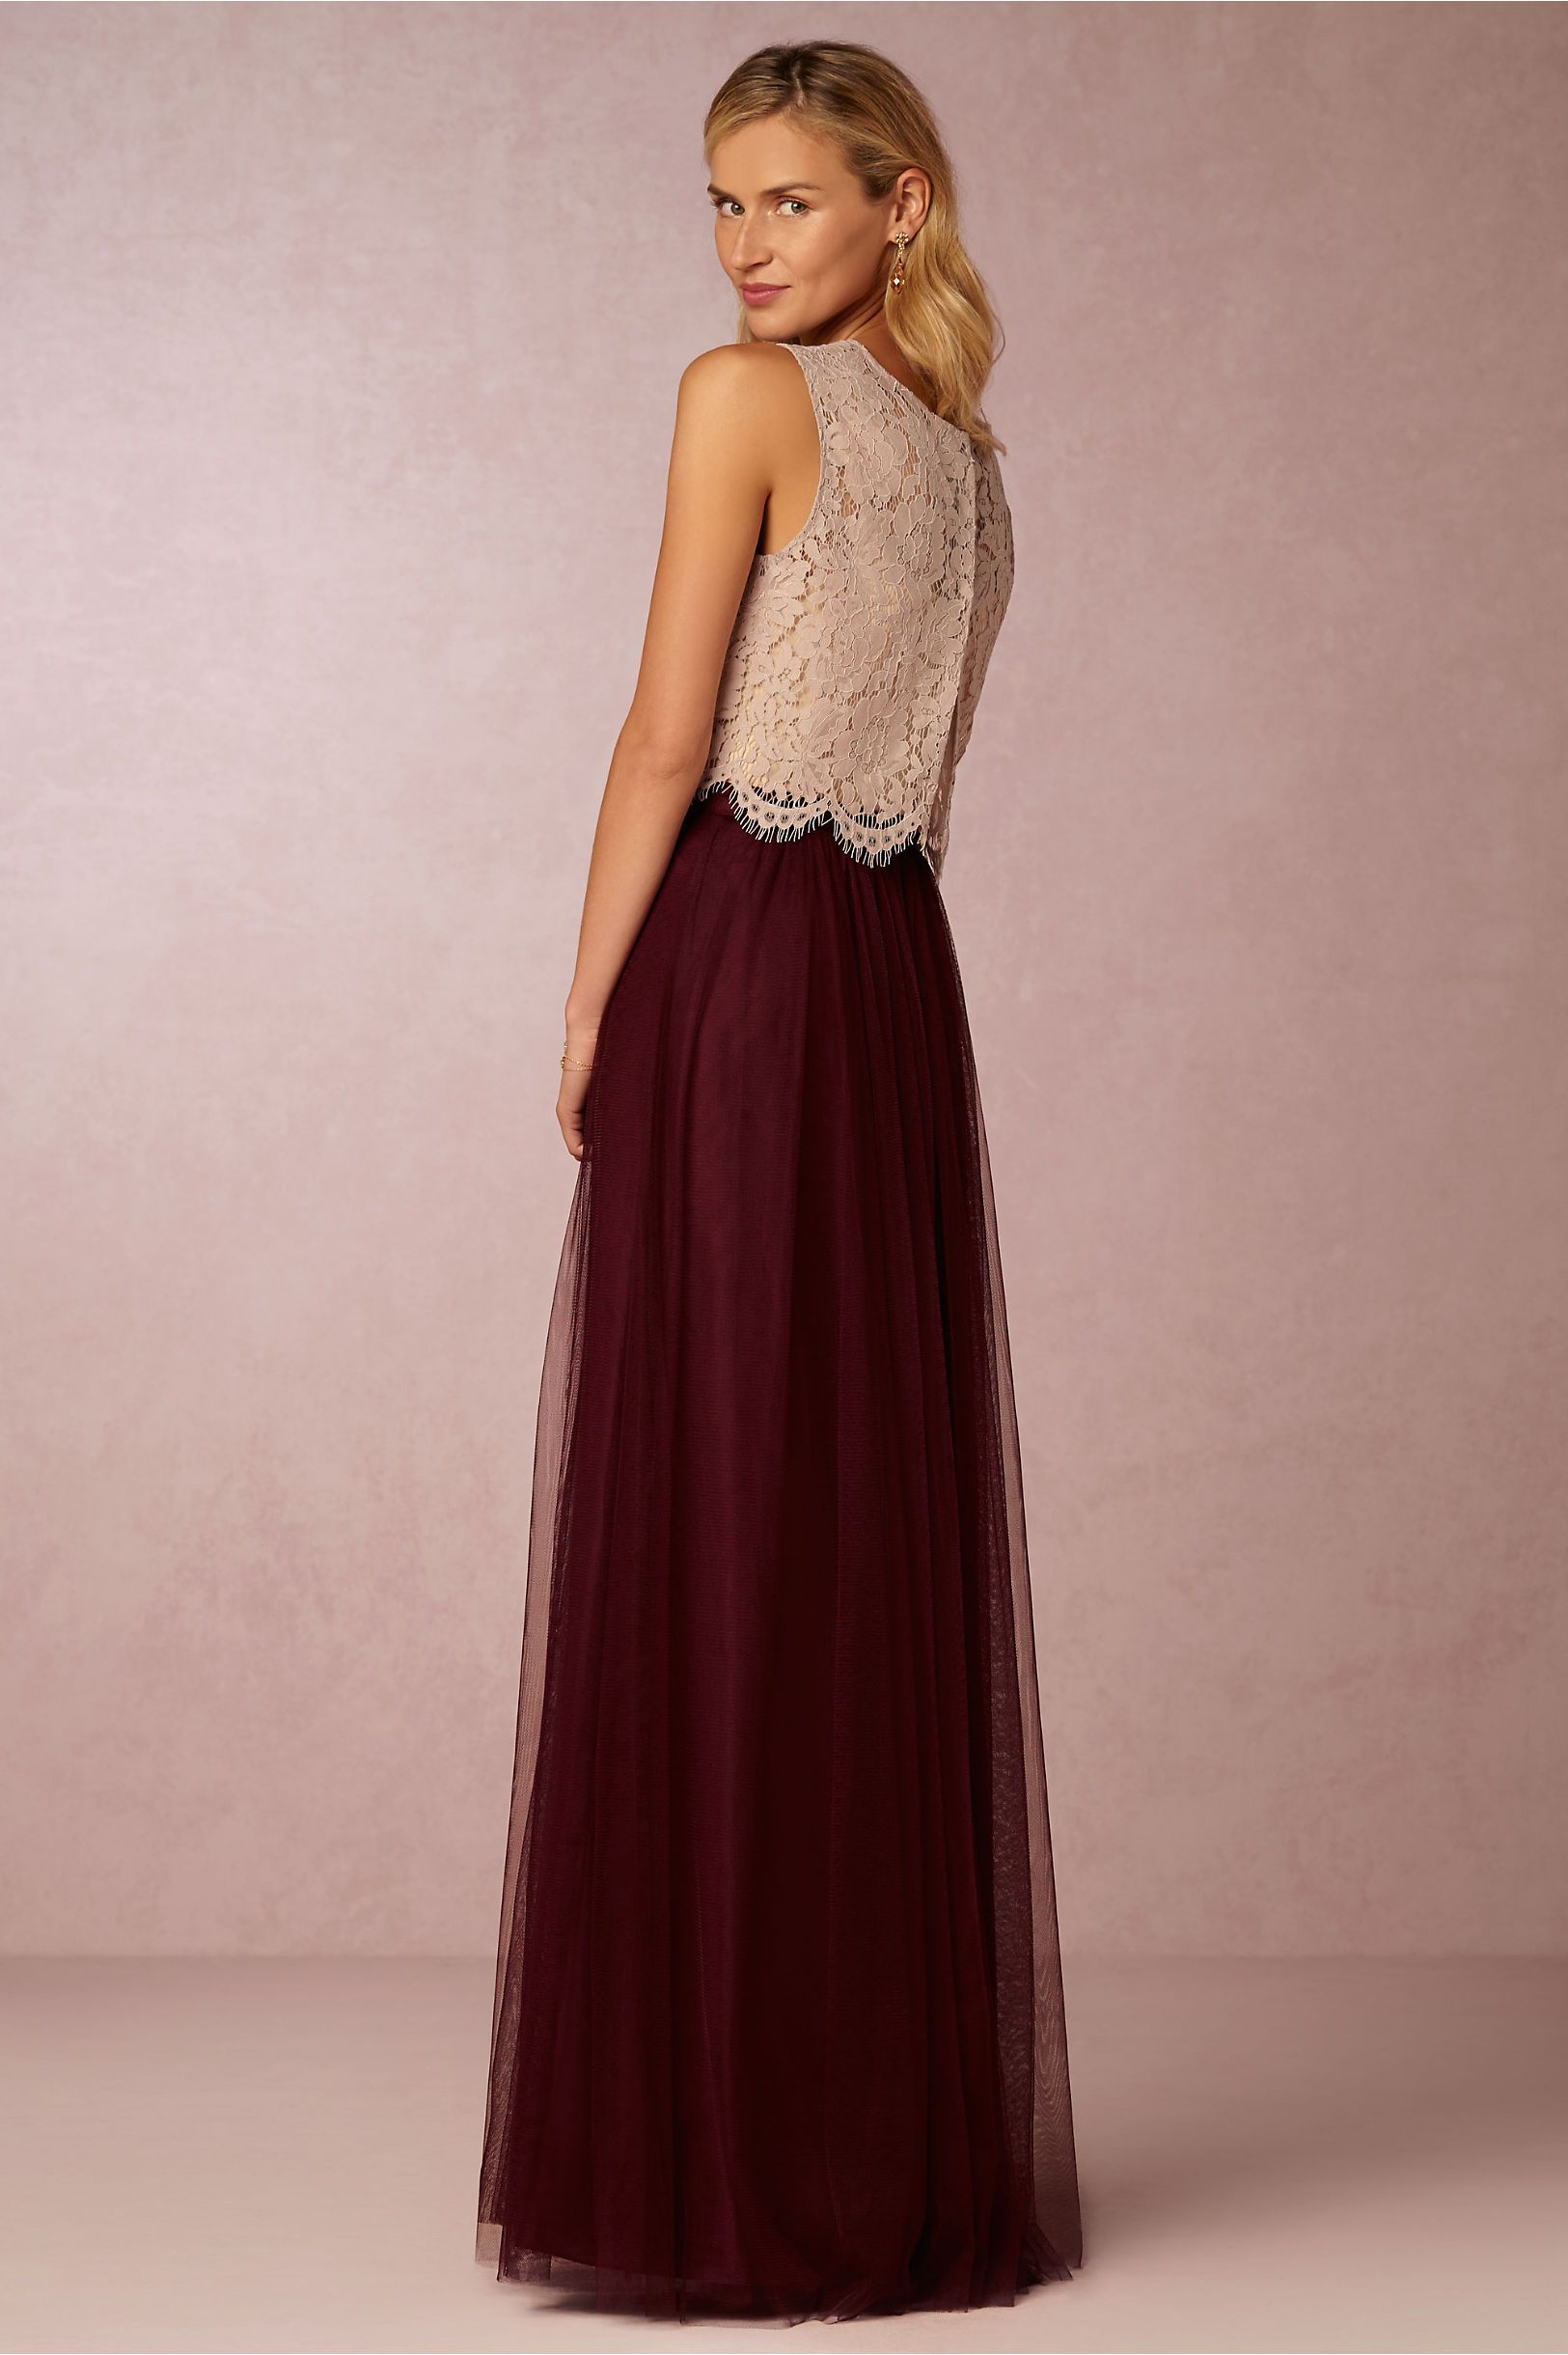 Bhldn louise tulle skirt in bridesmaids bridesmaid dresses bhldn louise tulle skirt in bridesmaids bridesmaid dresses separates at bhldn ombrellifo Choice Image